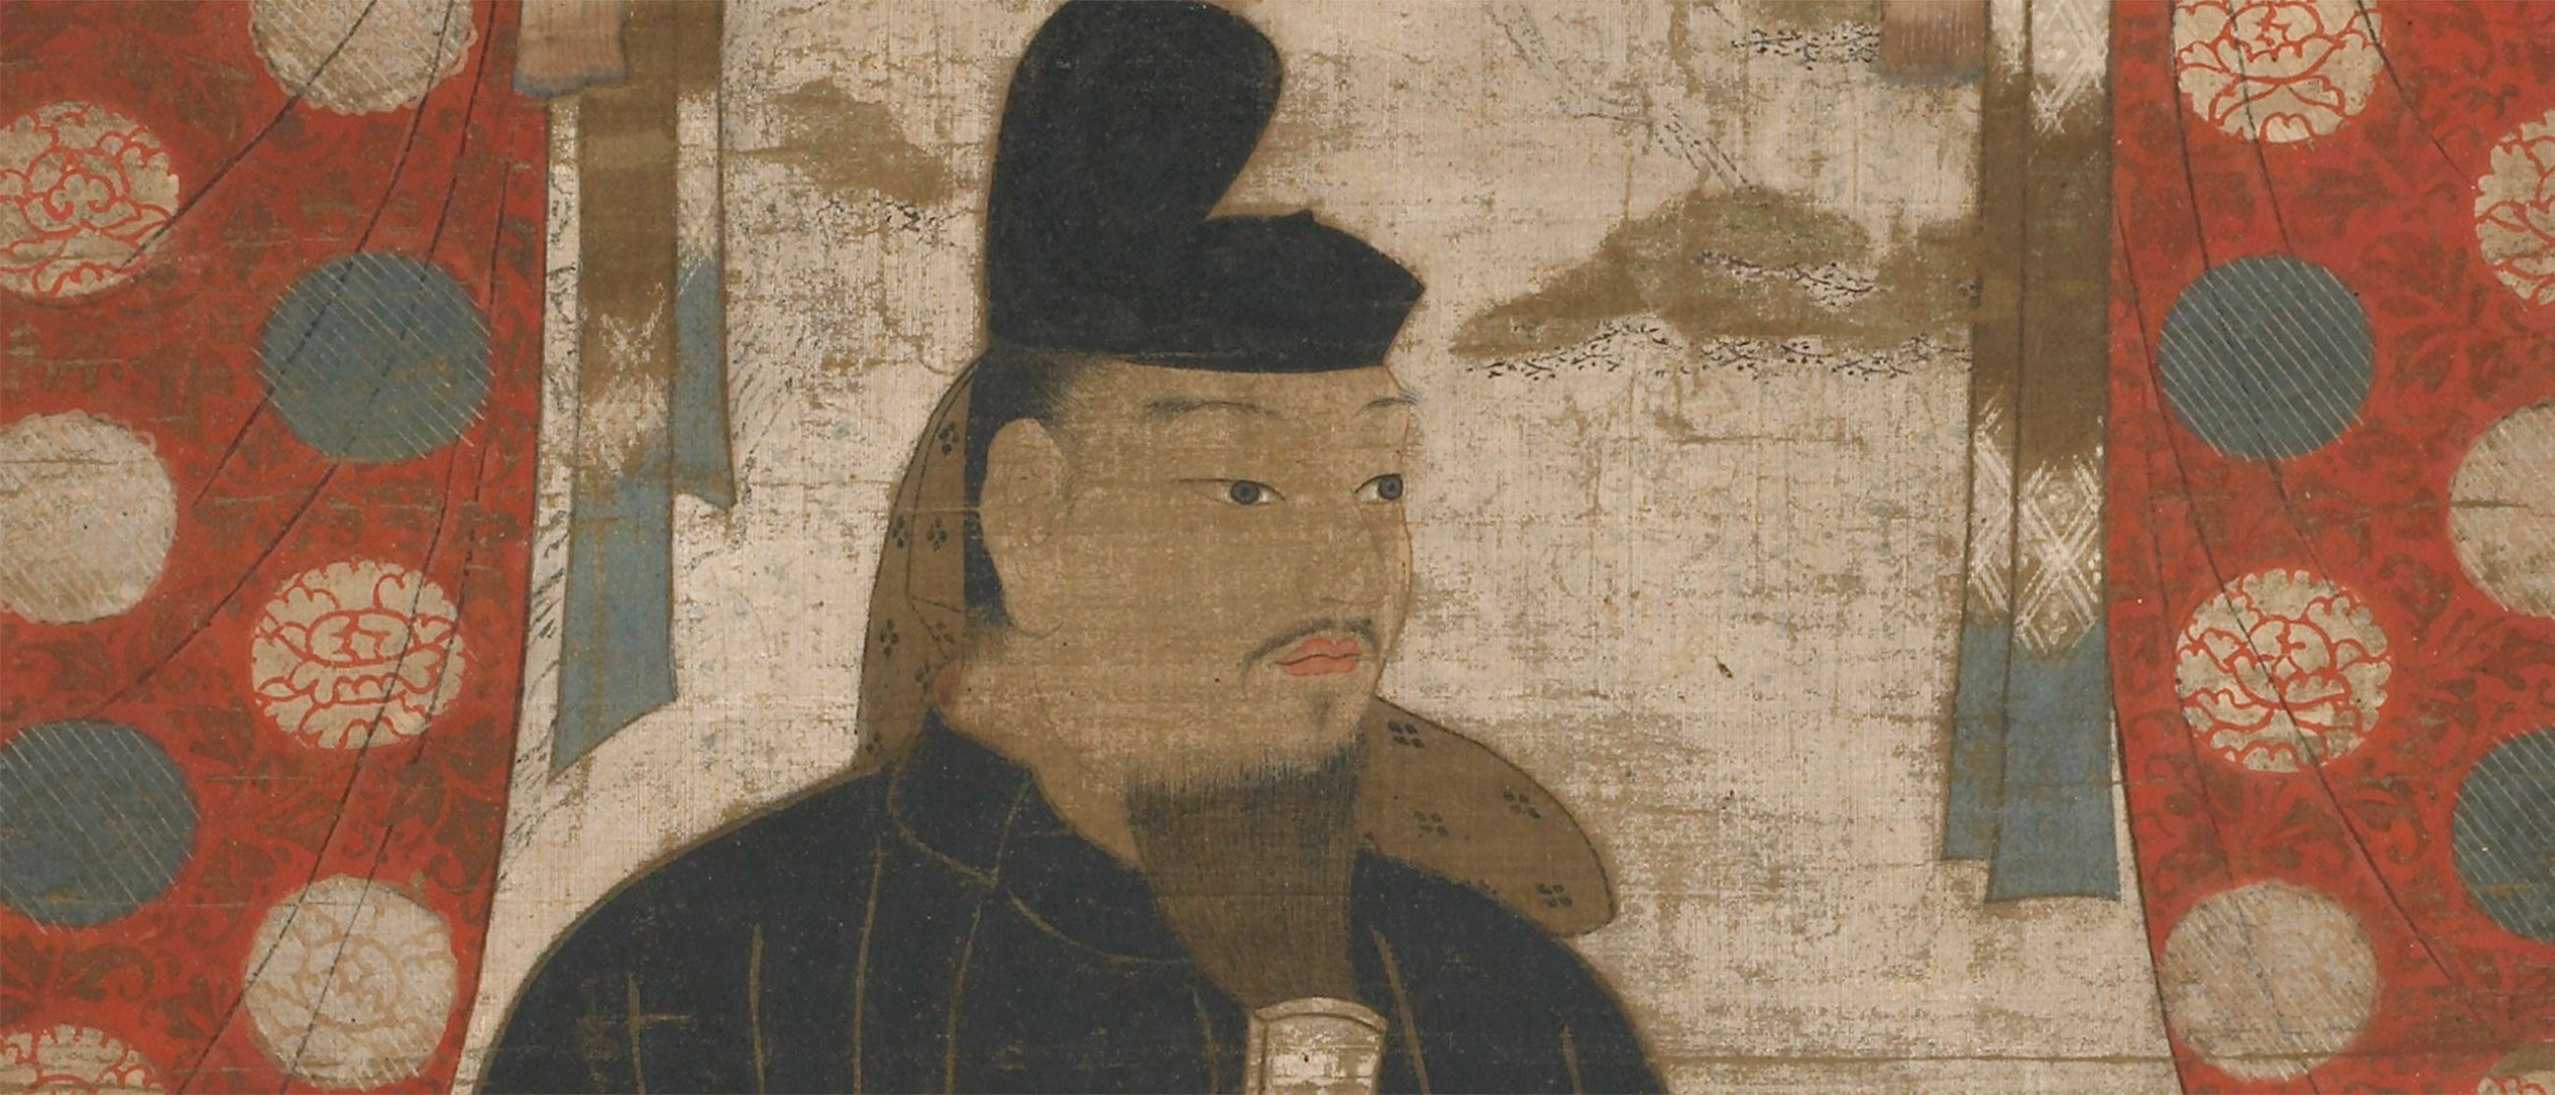 This portrait of the Japanese aristocrat Fujiwara no Kamatari (614- 669) and his two sons is a religious icon.